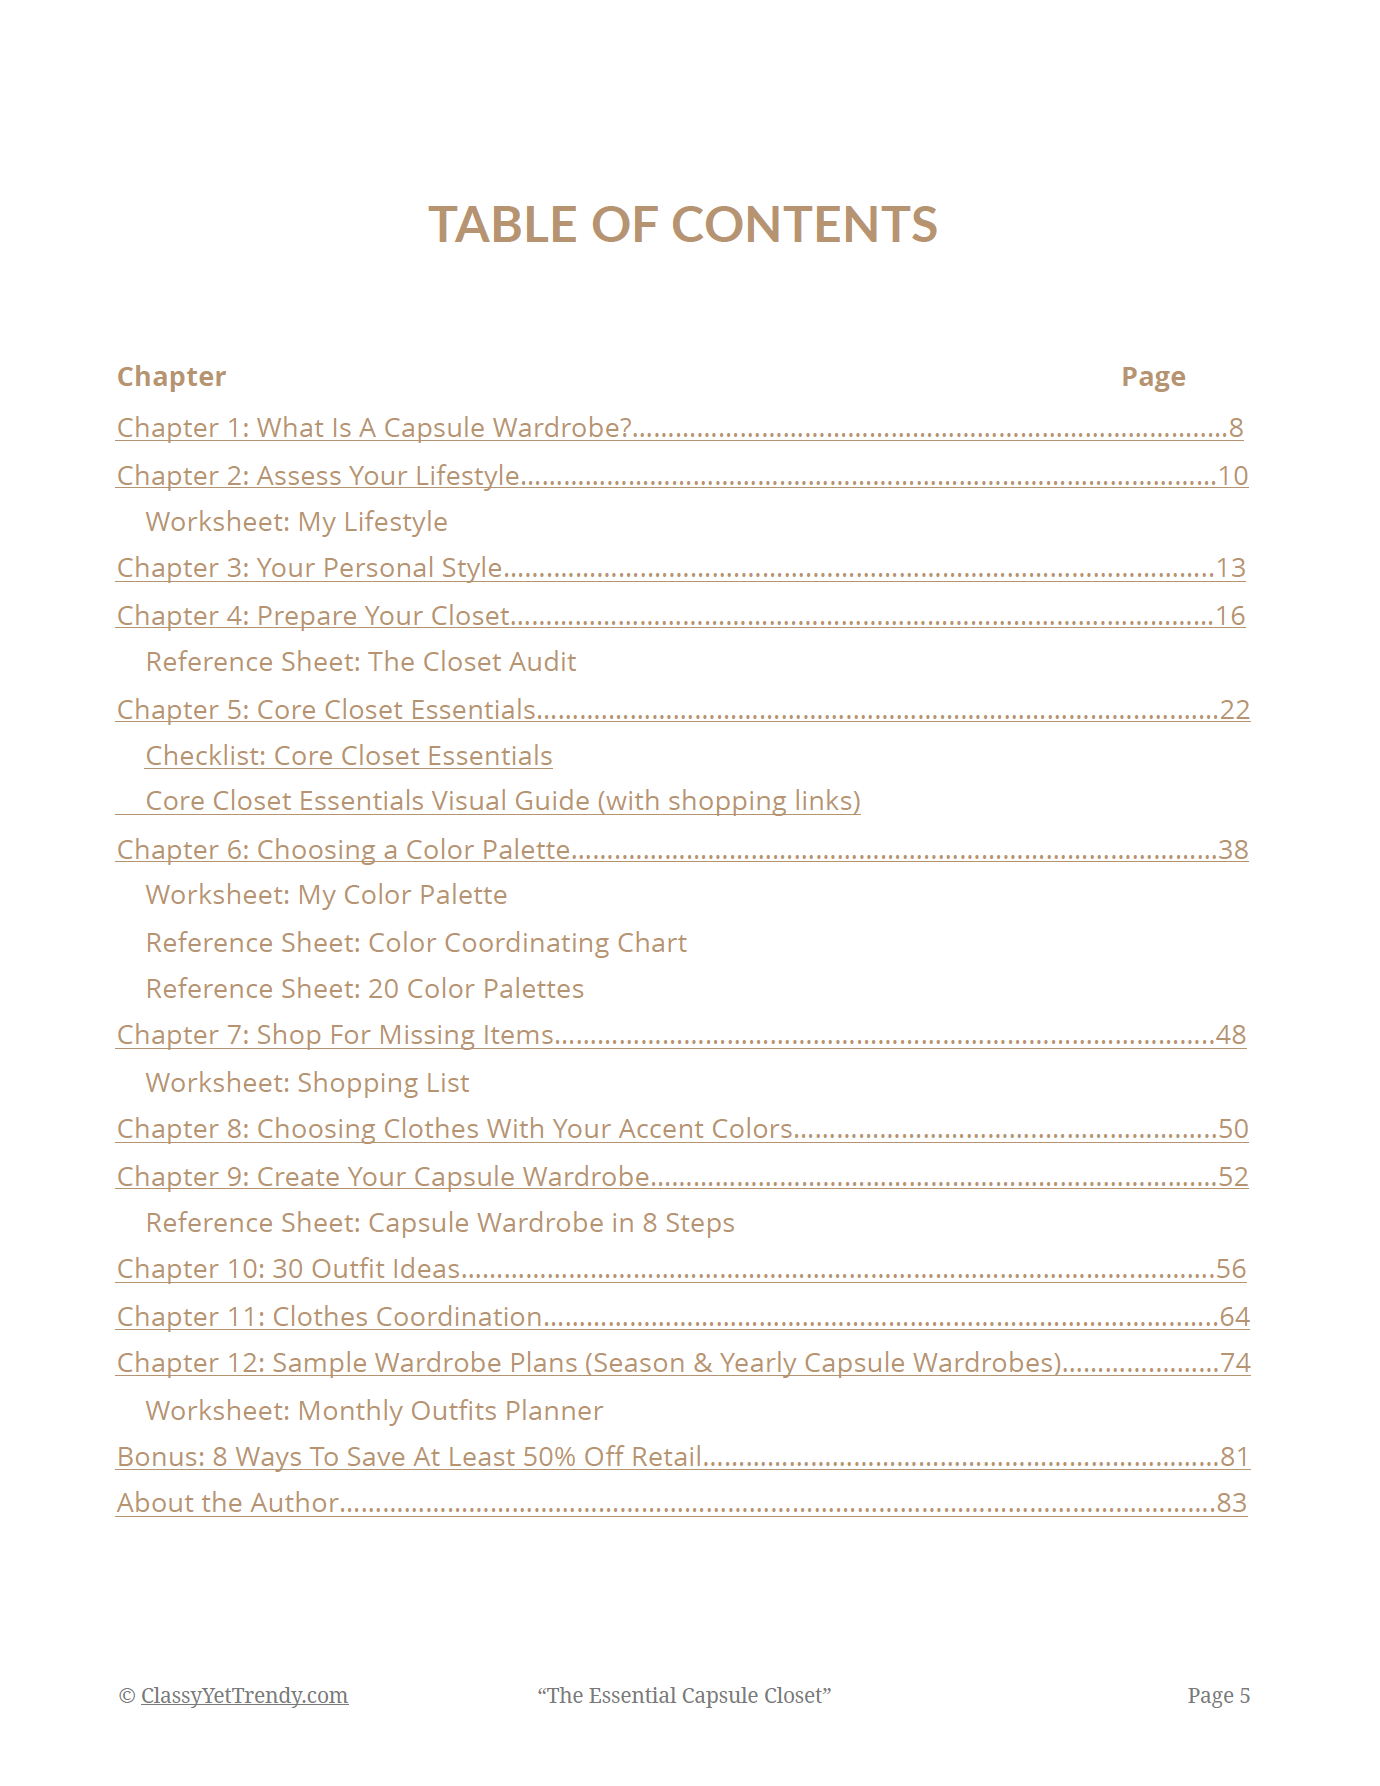 The Essential Capsule Closet - Table of Contents